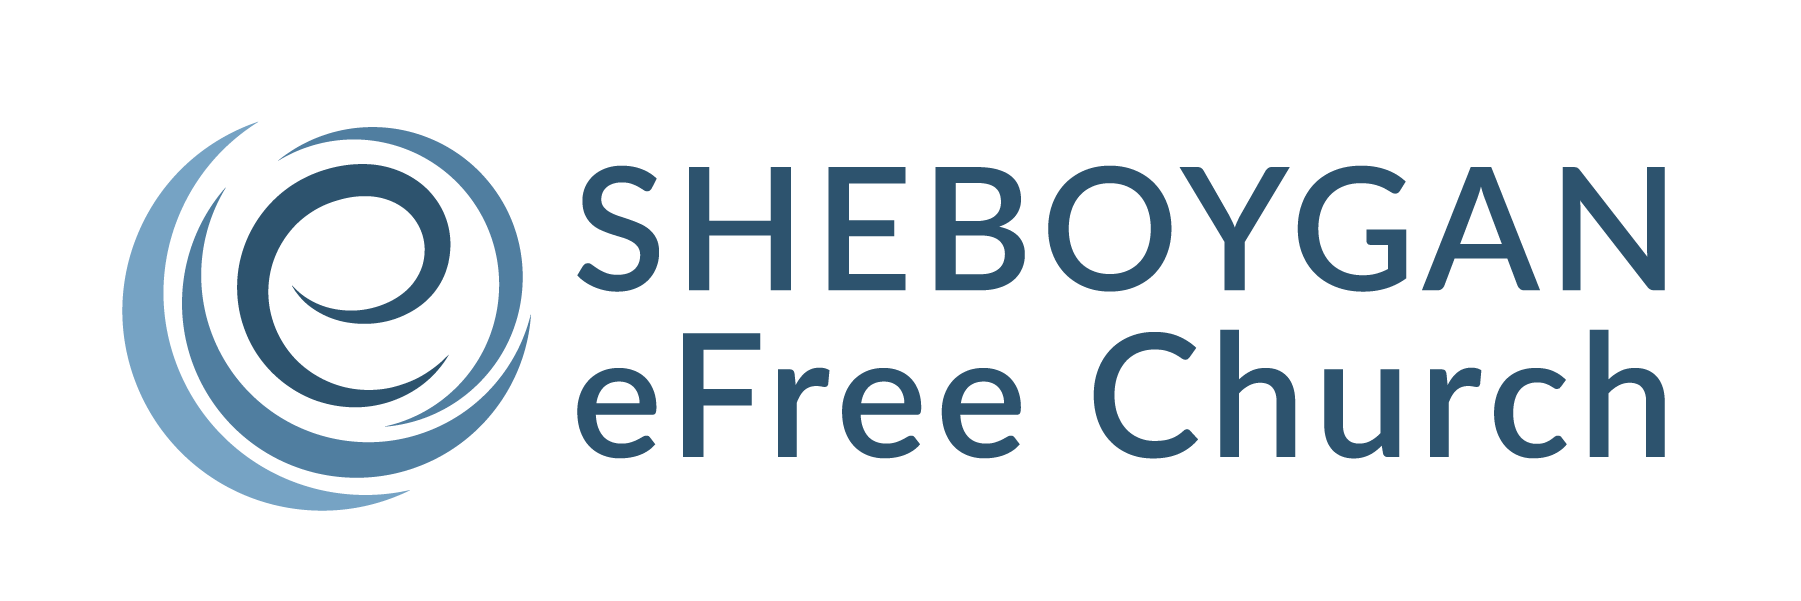 Sheboygan Evangelical Free Church